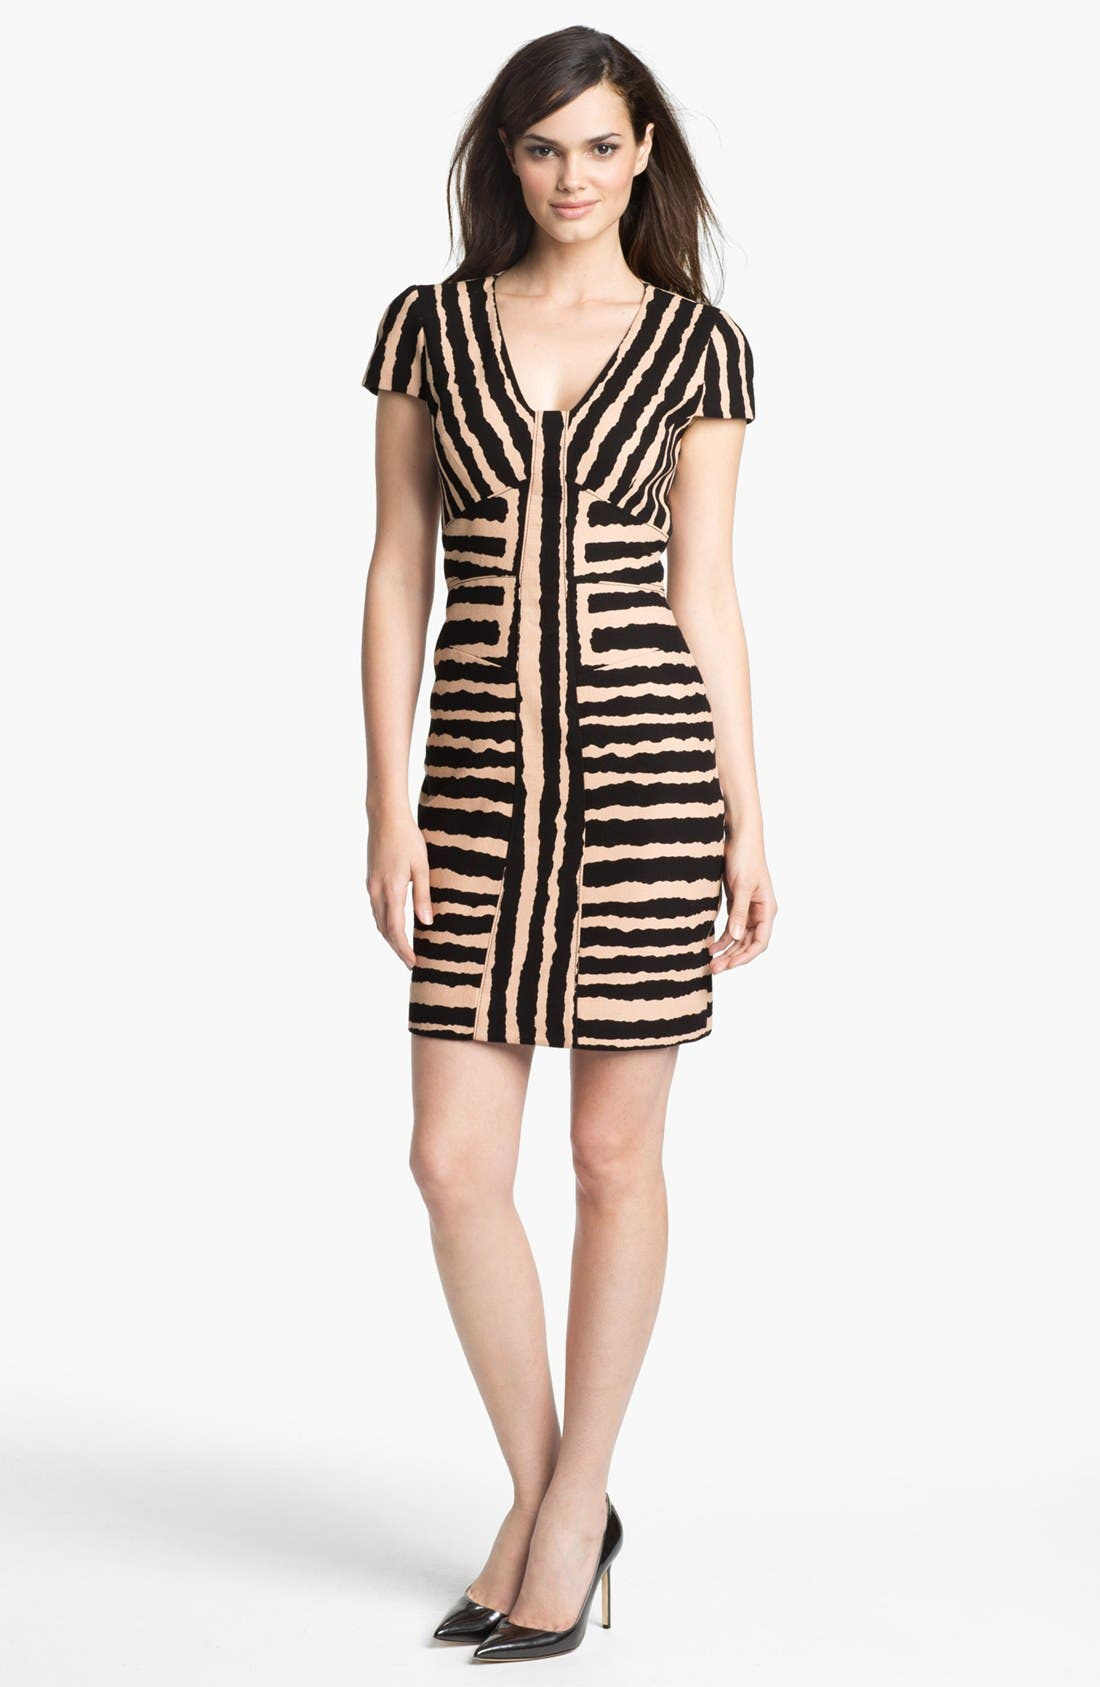 Main Image - 4.collective Print Cap Sleeve Cotton Sheath Dress